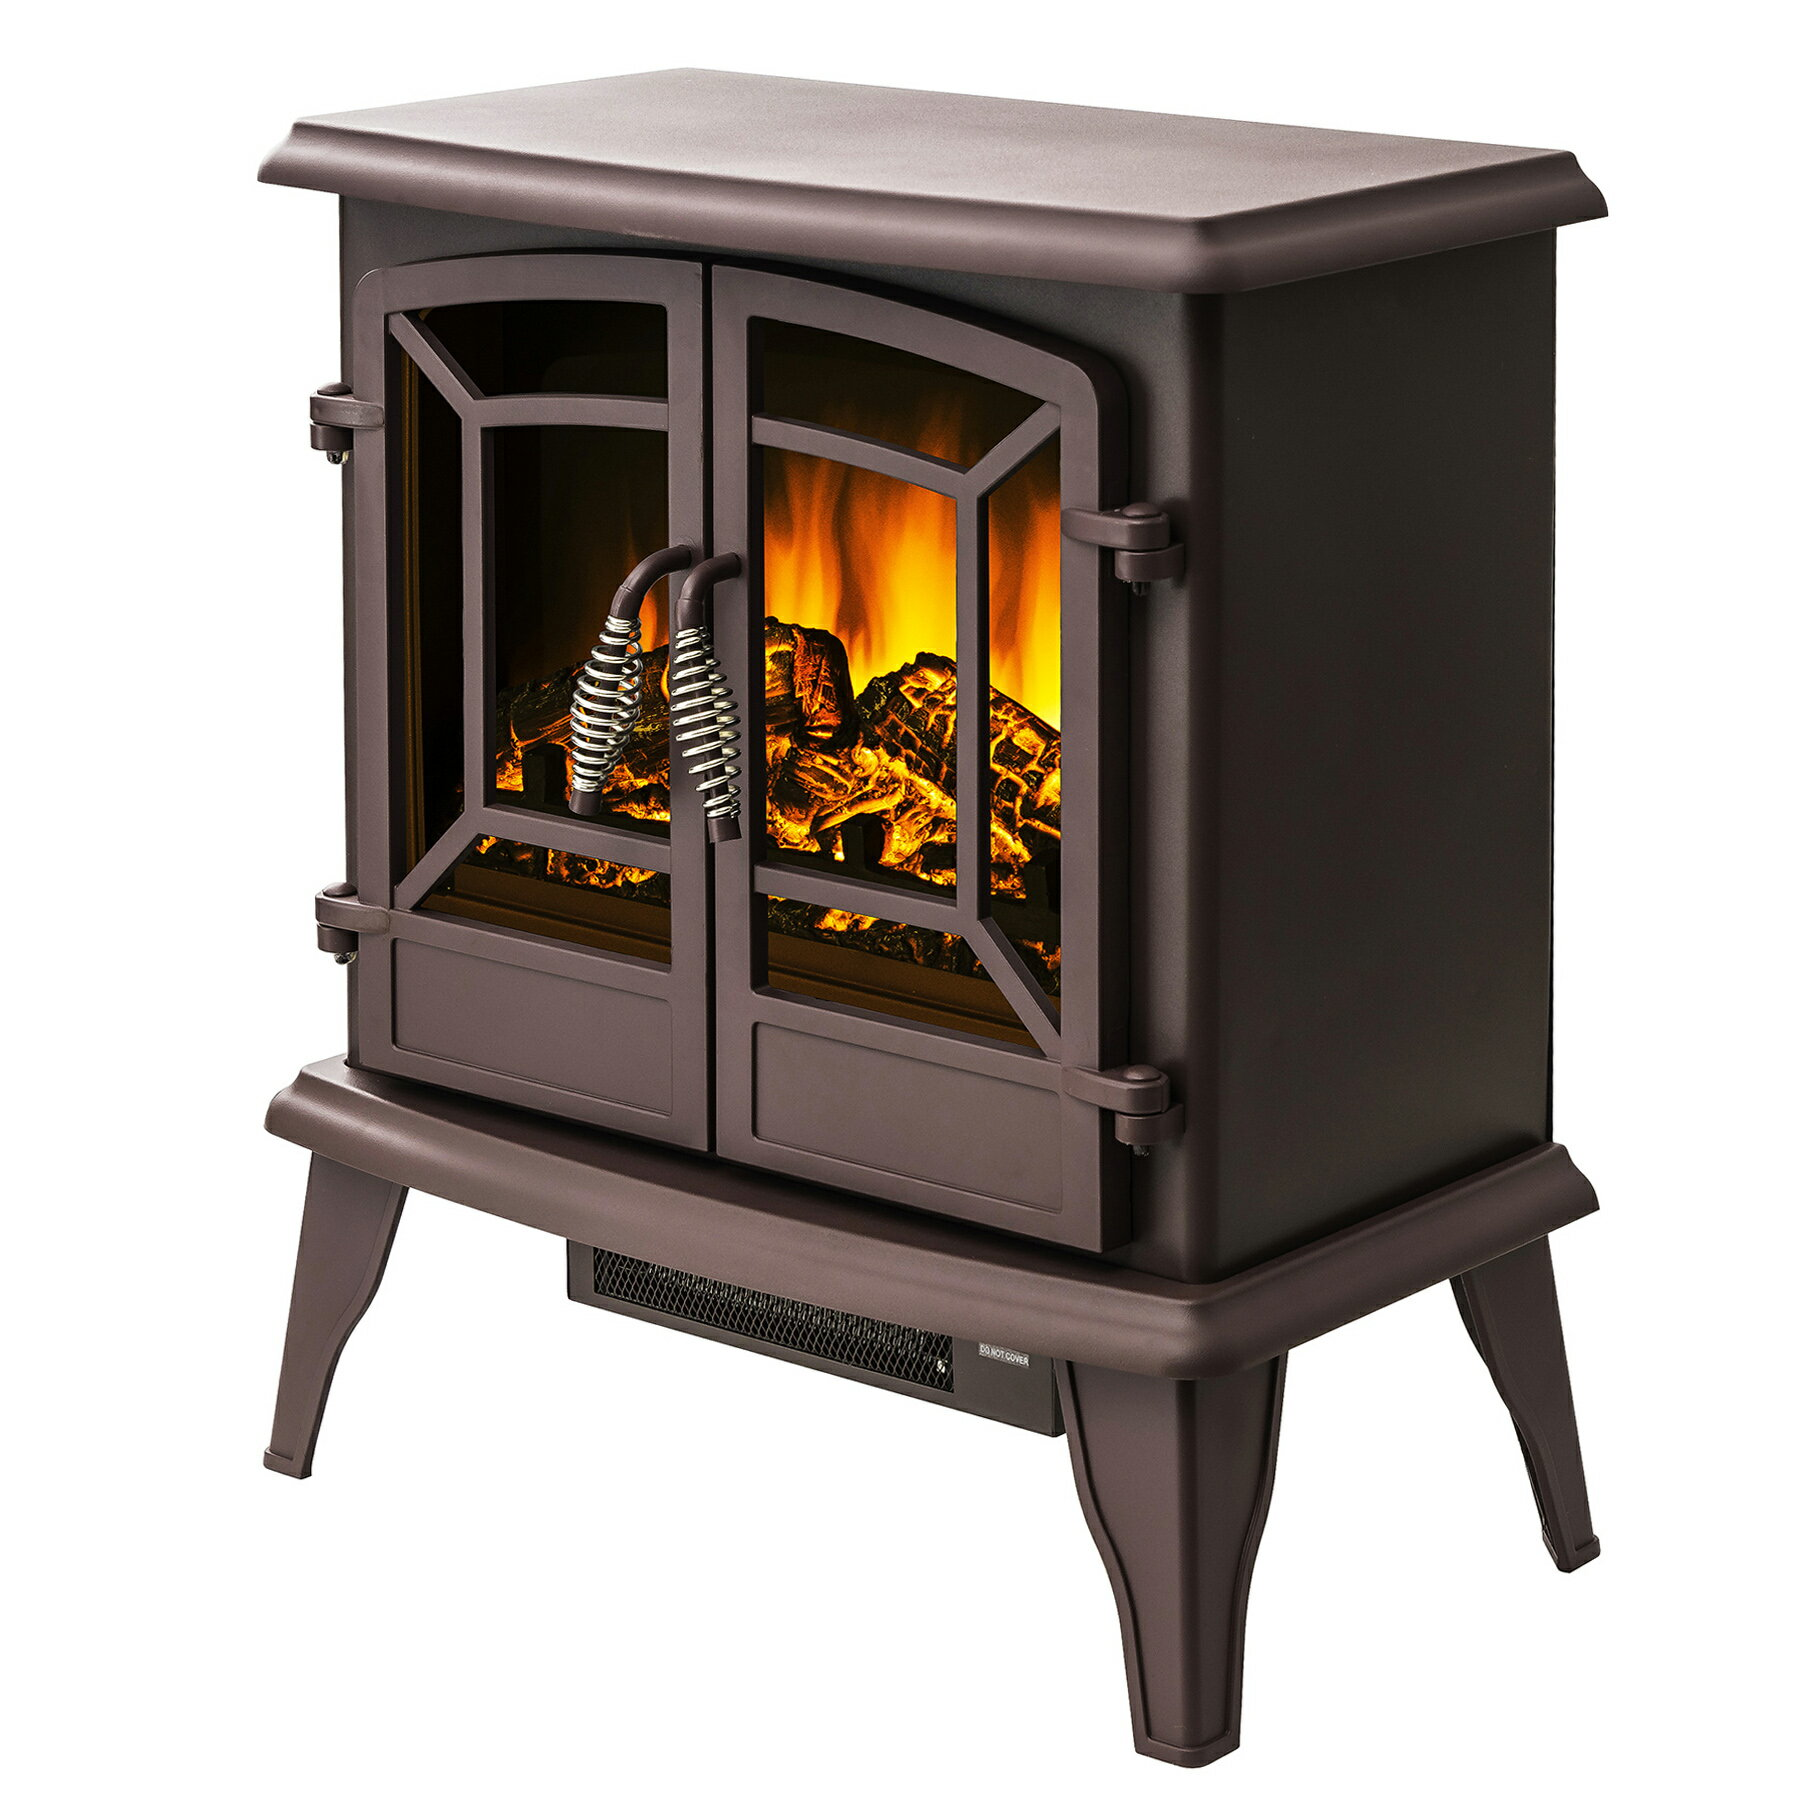 "AKDY 20"" Portable Freestanding Electric Fireplace Stove Heater 4"